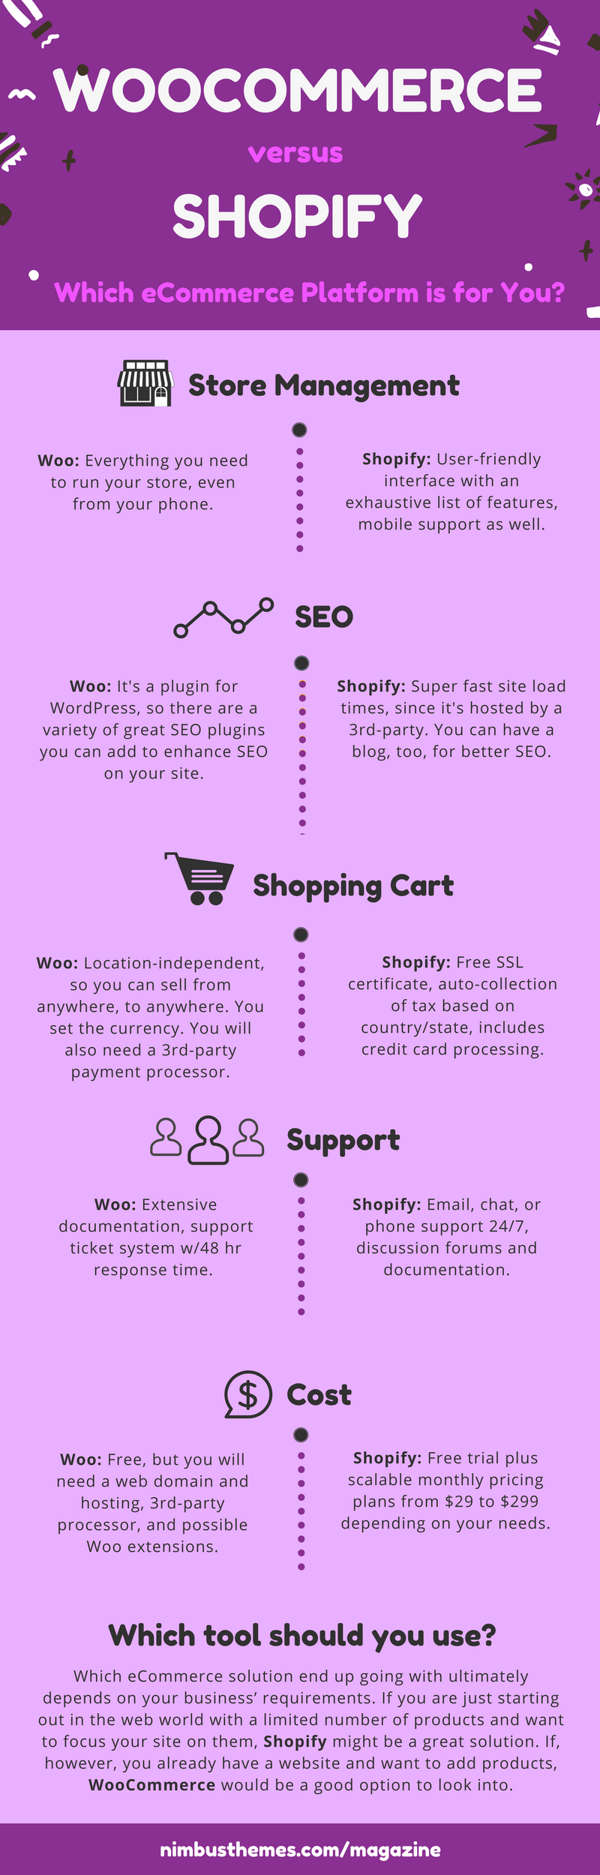 woocommerce vs shopify infographic